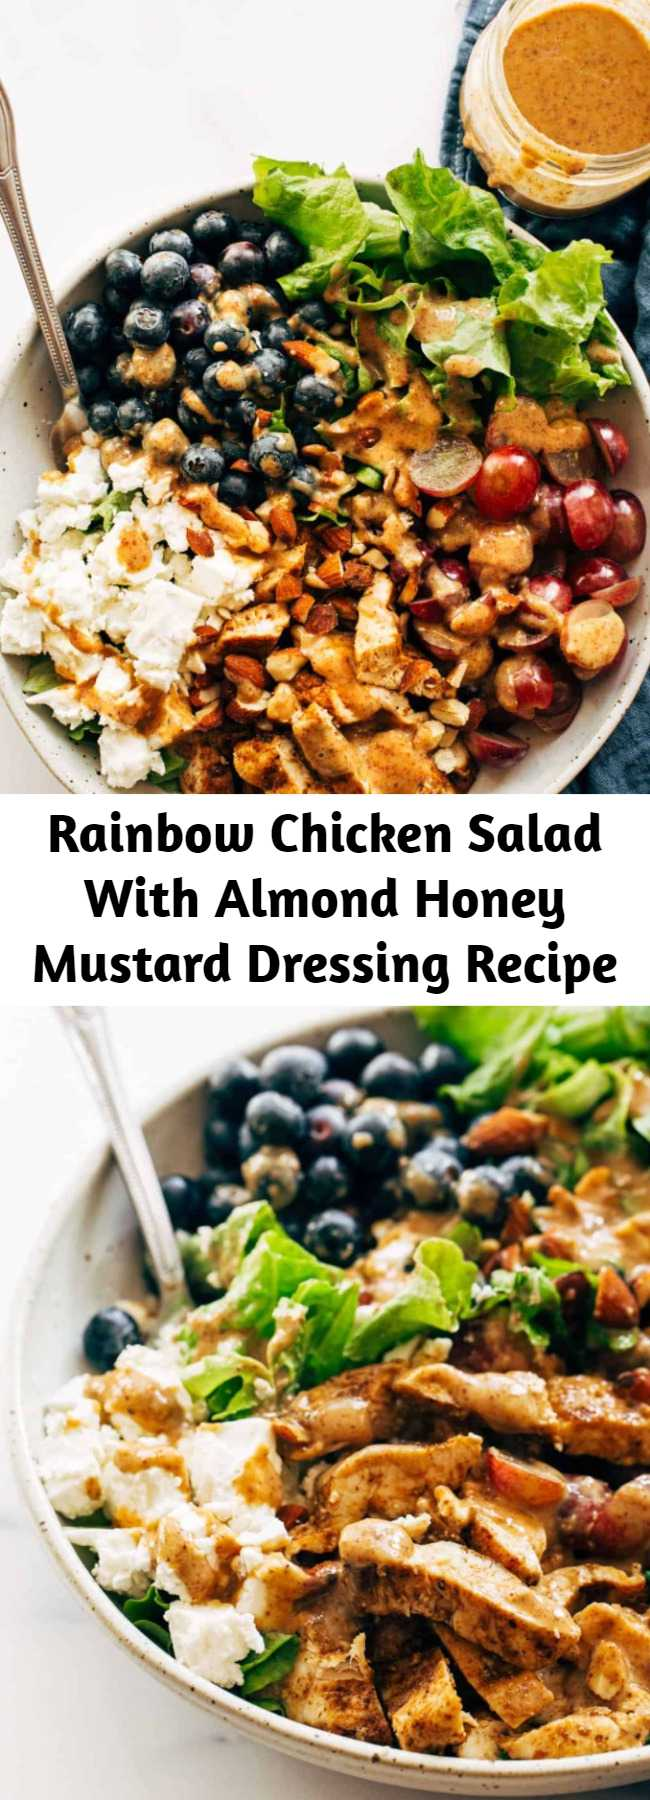 Rainbow Chicken Salad With Almond Honey Mustard Dressing Recipe - This Rainbow Chicken Salad is topped with the most creamy and delicious homemade Almond Honey Mustard Dressing. Perfect for lunch or dinner! #glutenfree #healthy #salad #quickandeasyrecipe #healthyrecipe